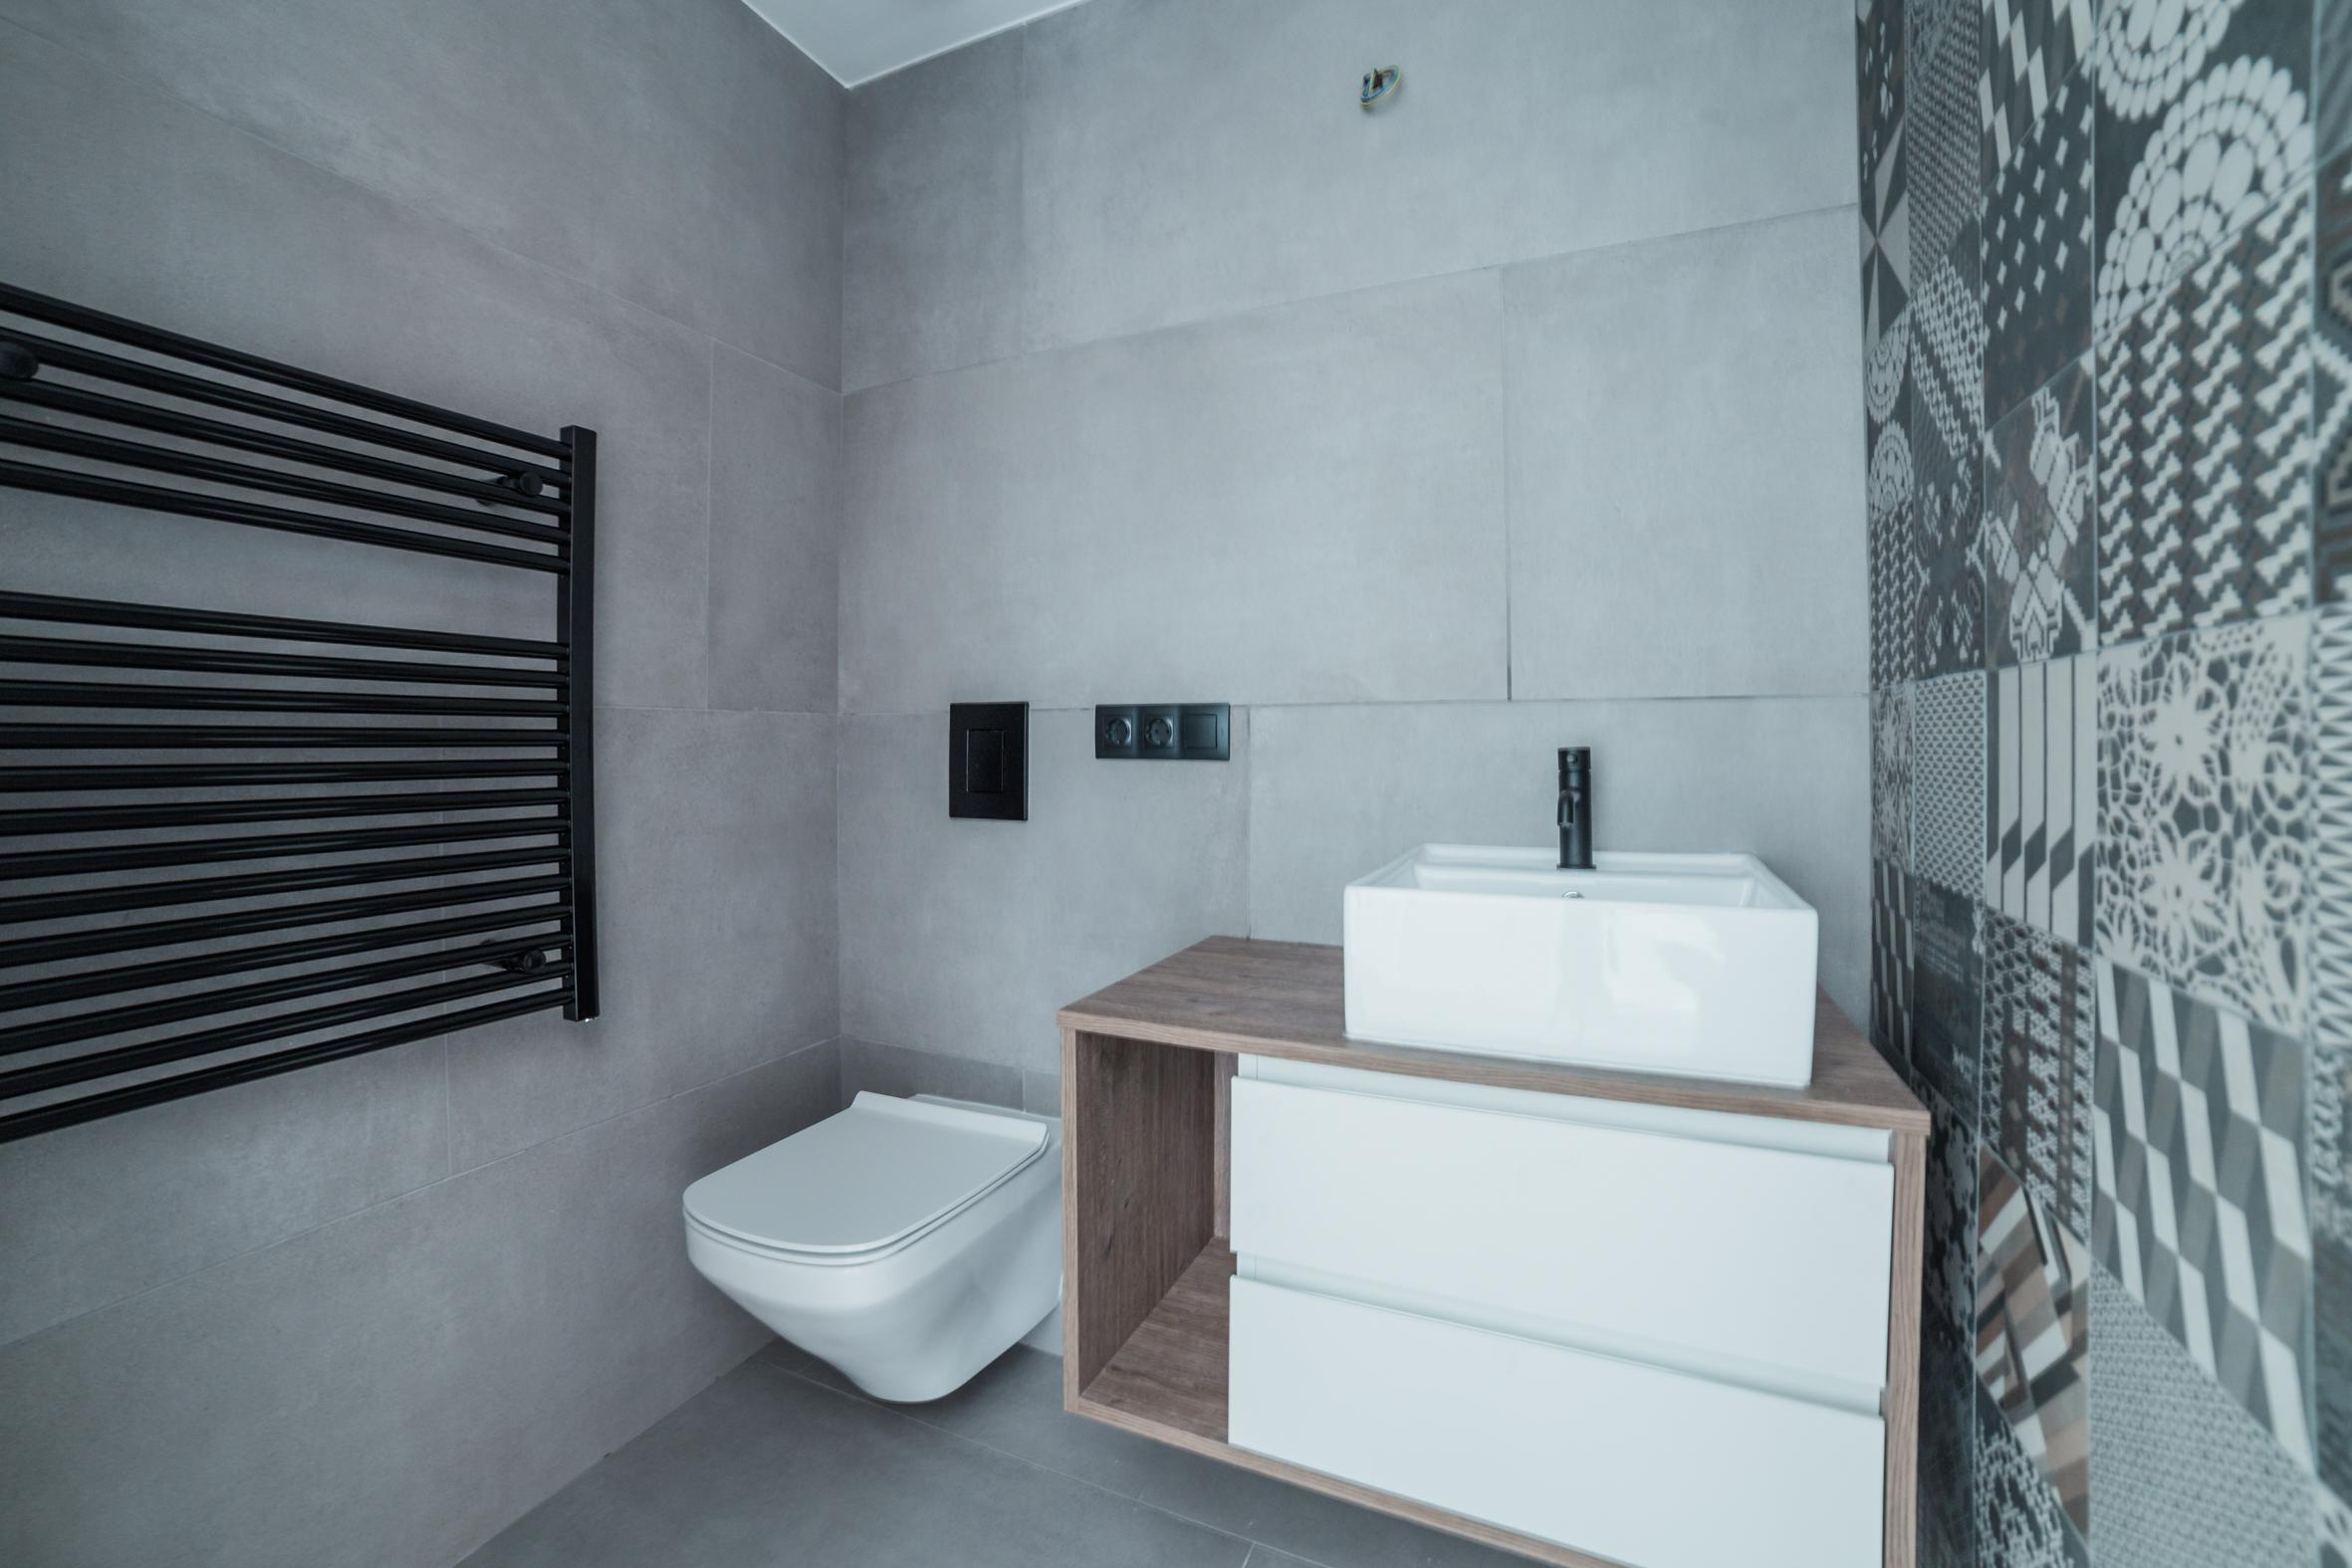 251675 Penthouse for sale in Les Corts, Les Corts 16